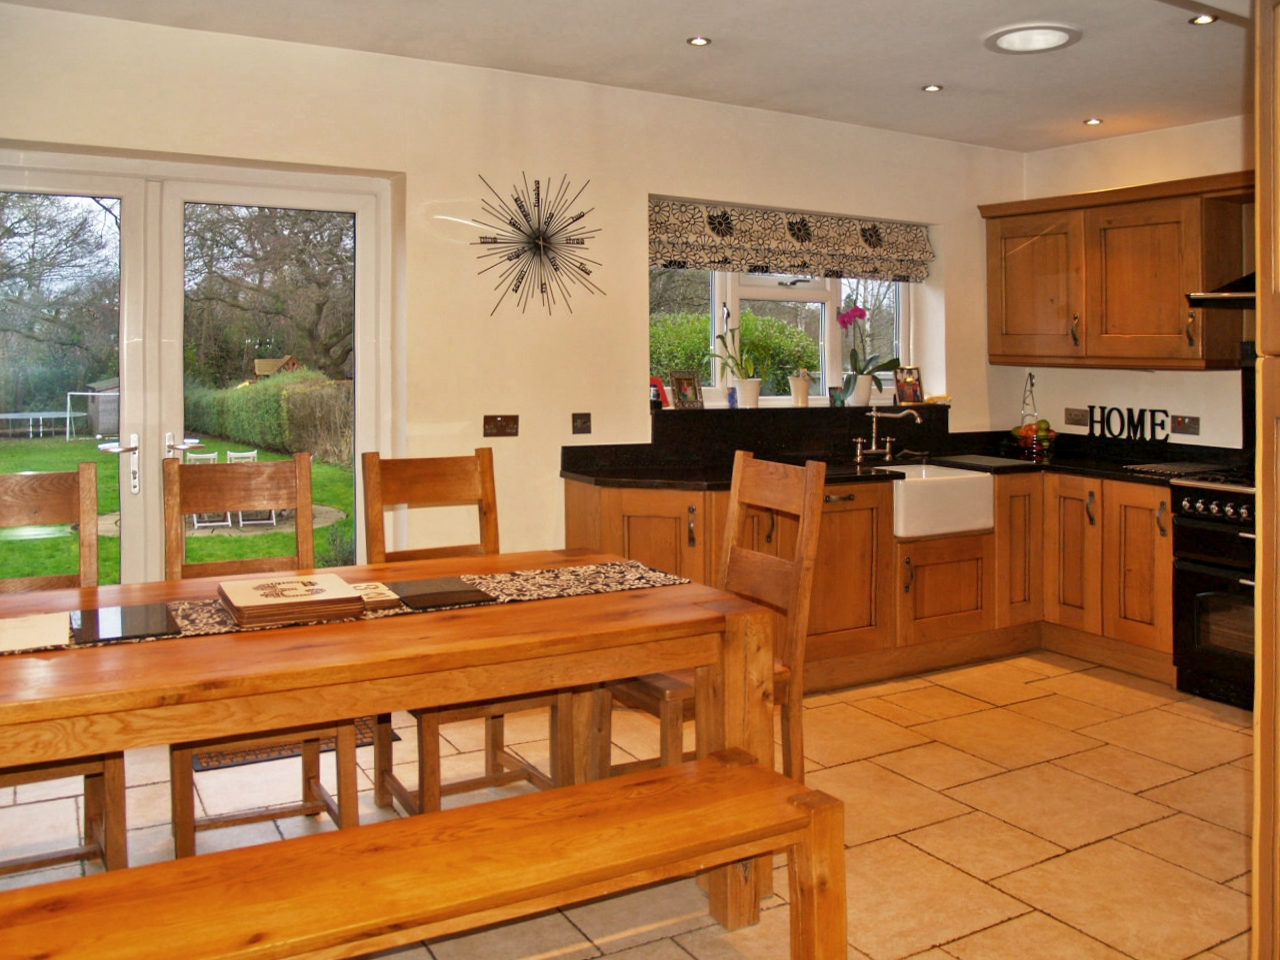 5 bedroom semi detached house SSTC in Solihull - photograph 5.